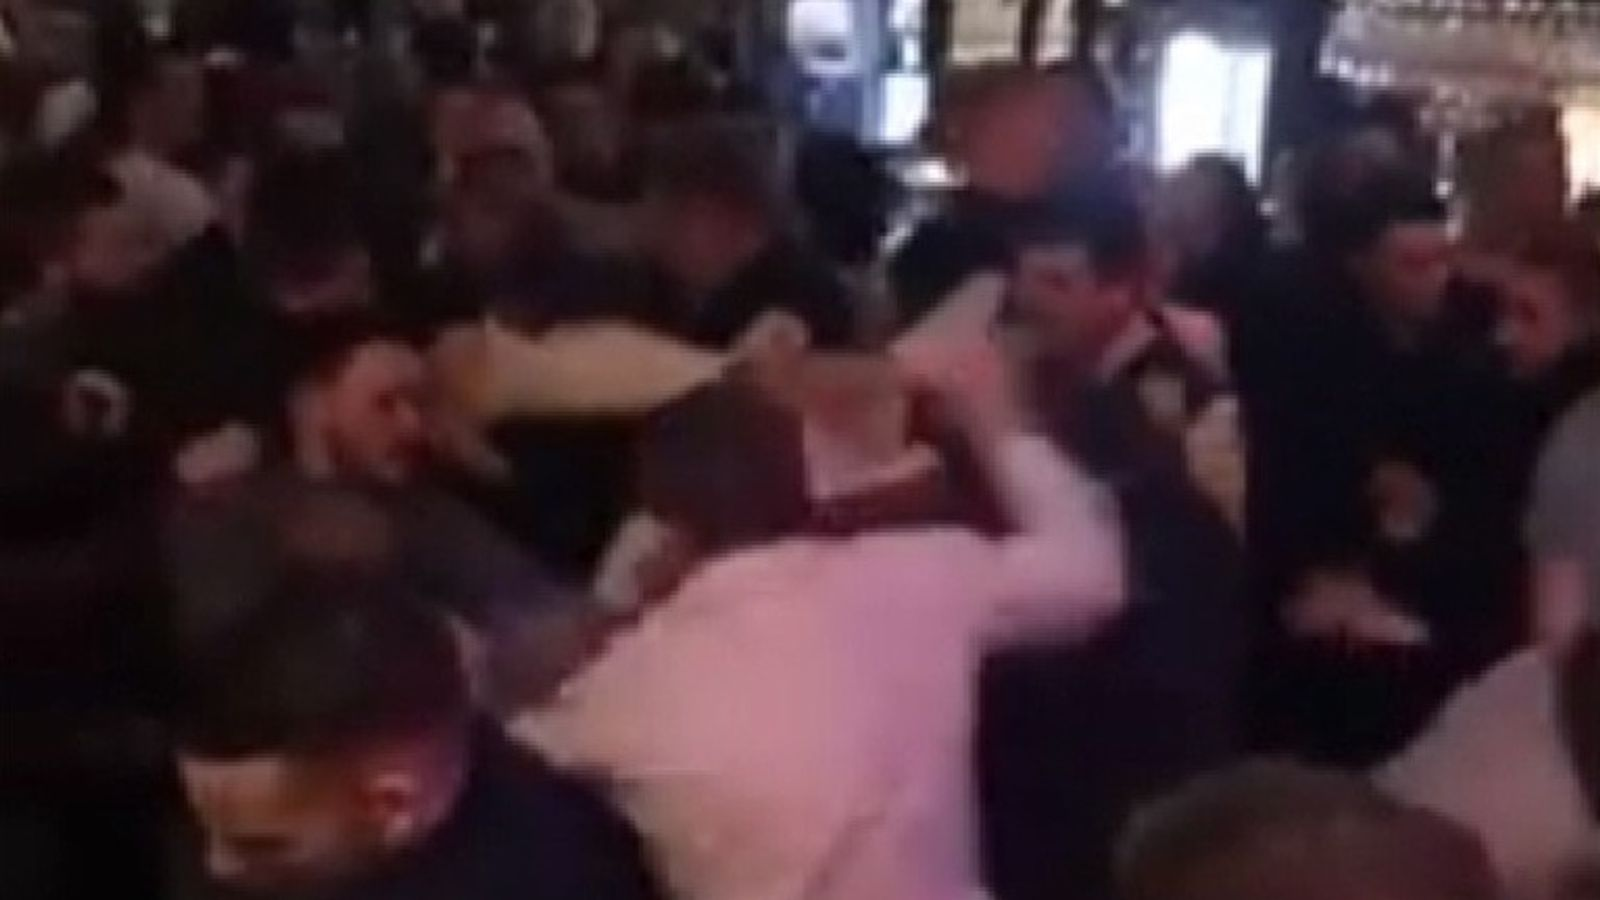 A police officer was injured in the pub fight